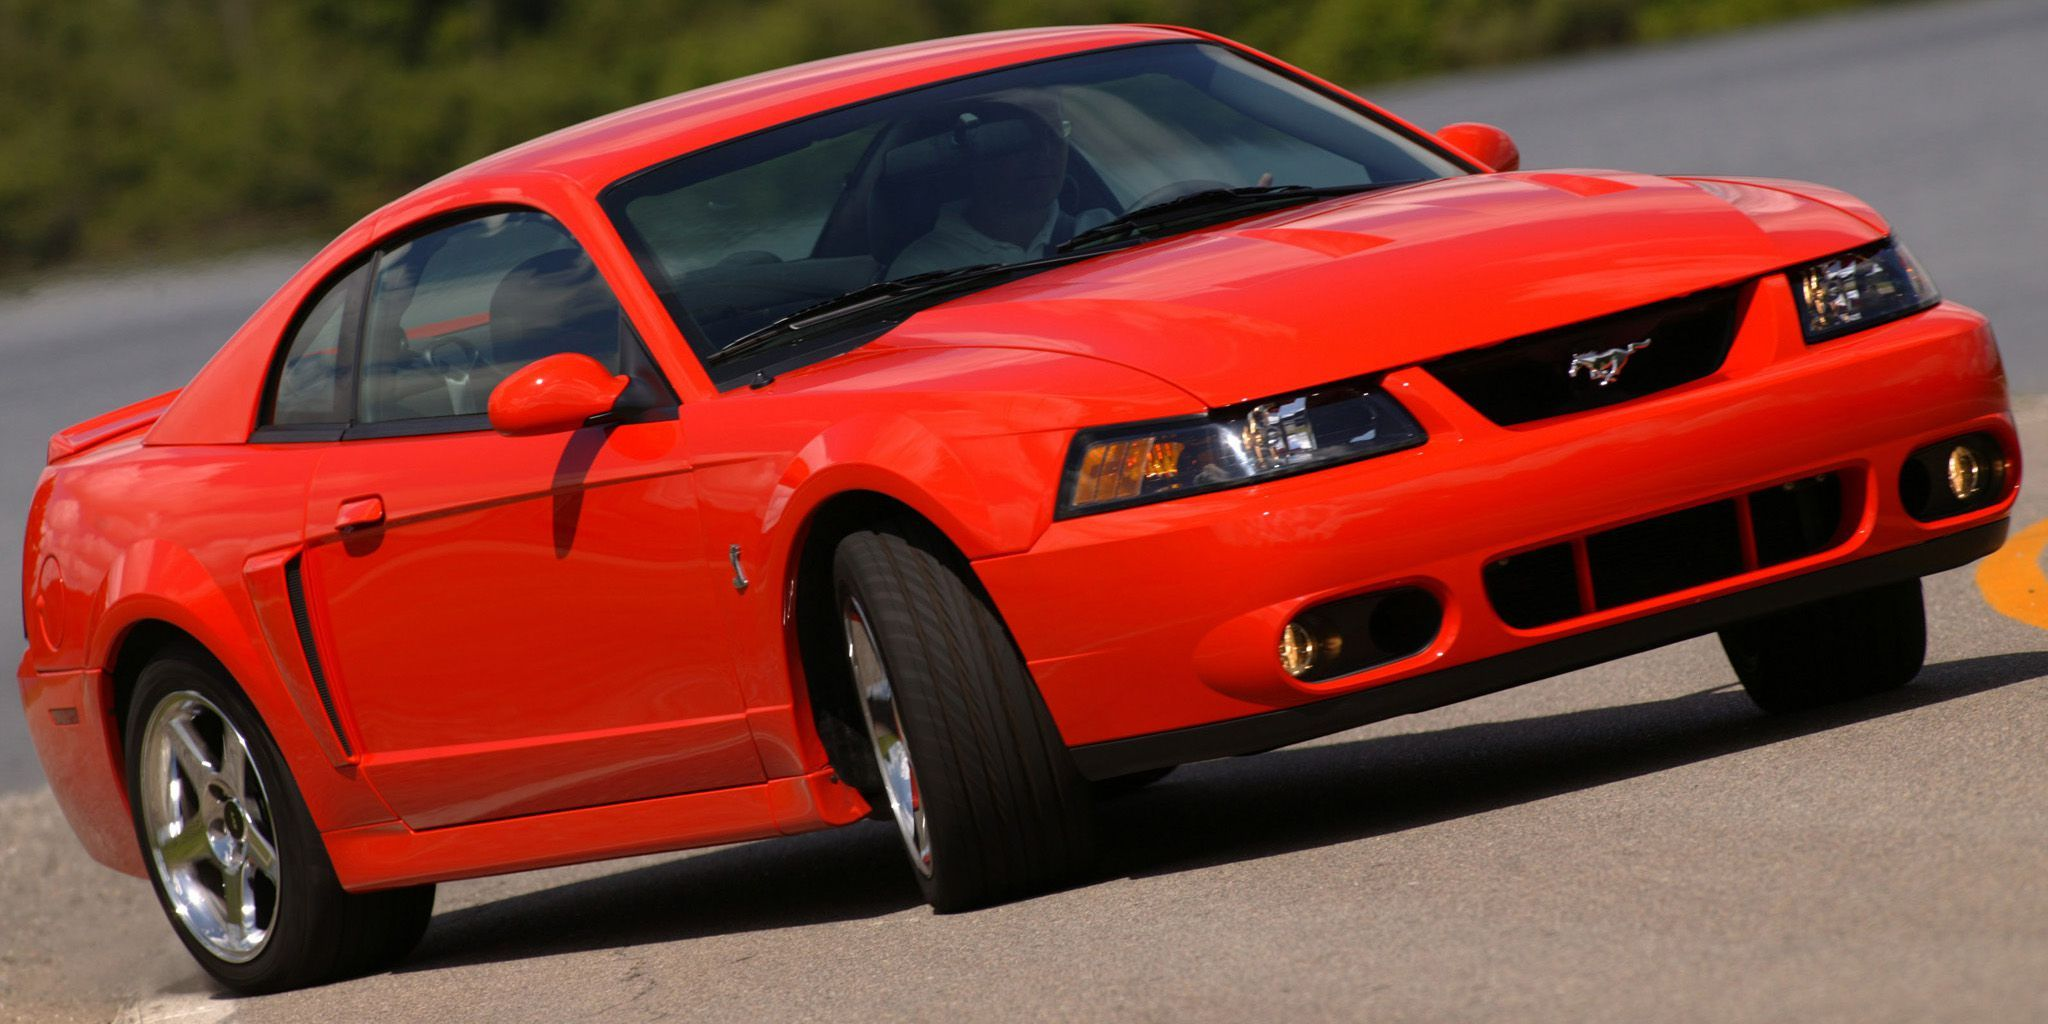 A 2004 Ford Mustang Svt Cobra Is Still A Monster Today Stangbangers 2004 Ford Mustang Ford Mustang Cobra Mustang